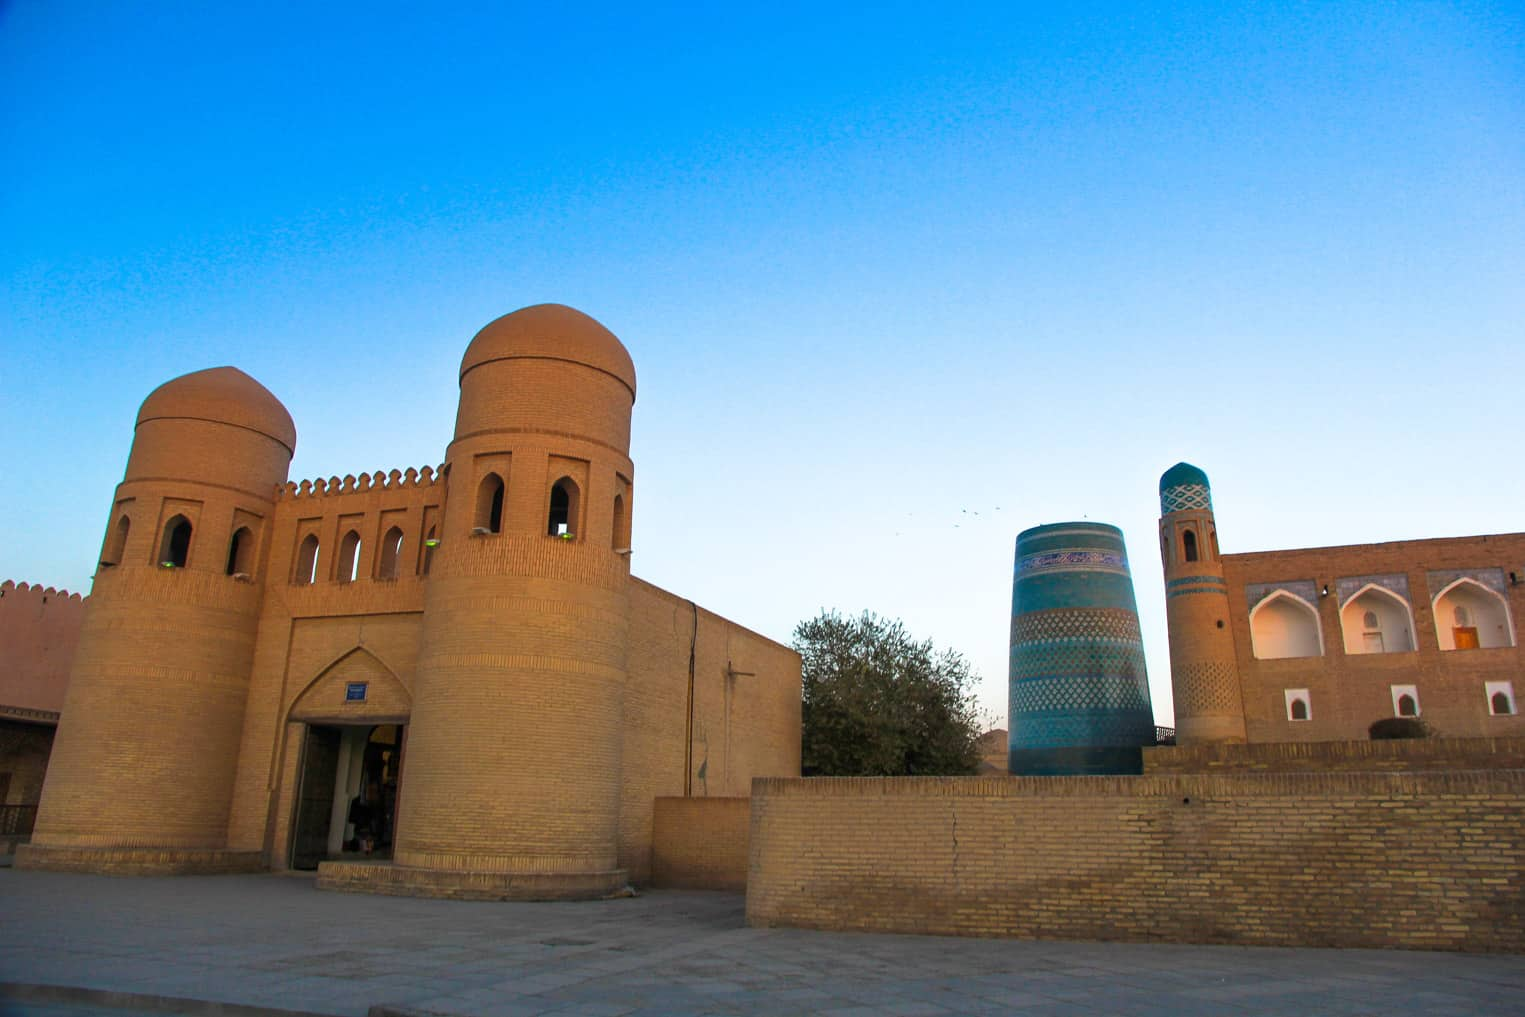 The main entrance to the old town of Khiva.